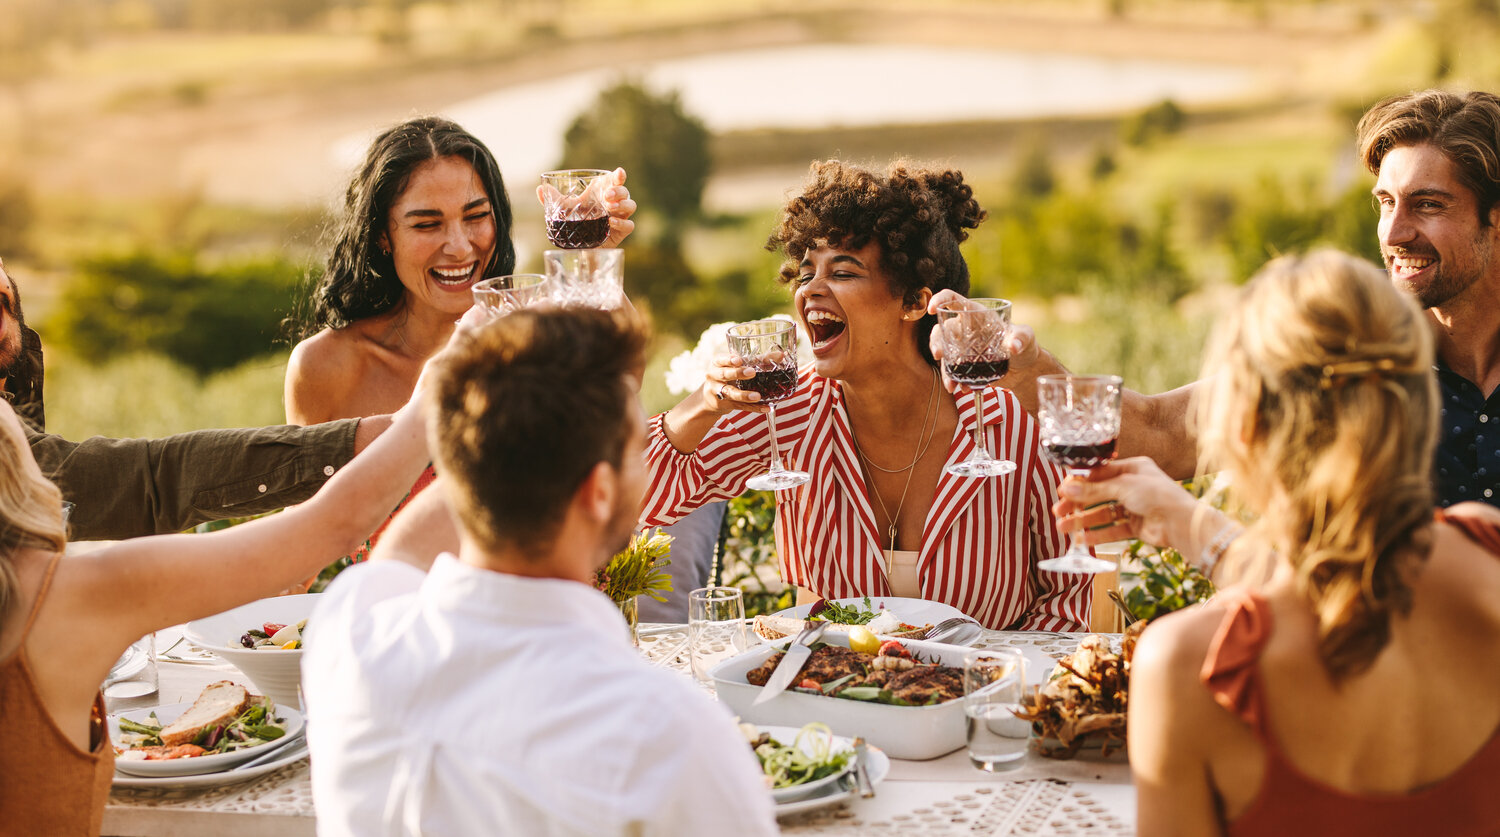 A group of young friends laughing as they toast with red wine over a table full of food